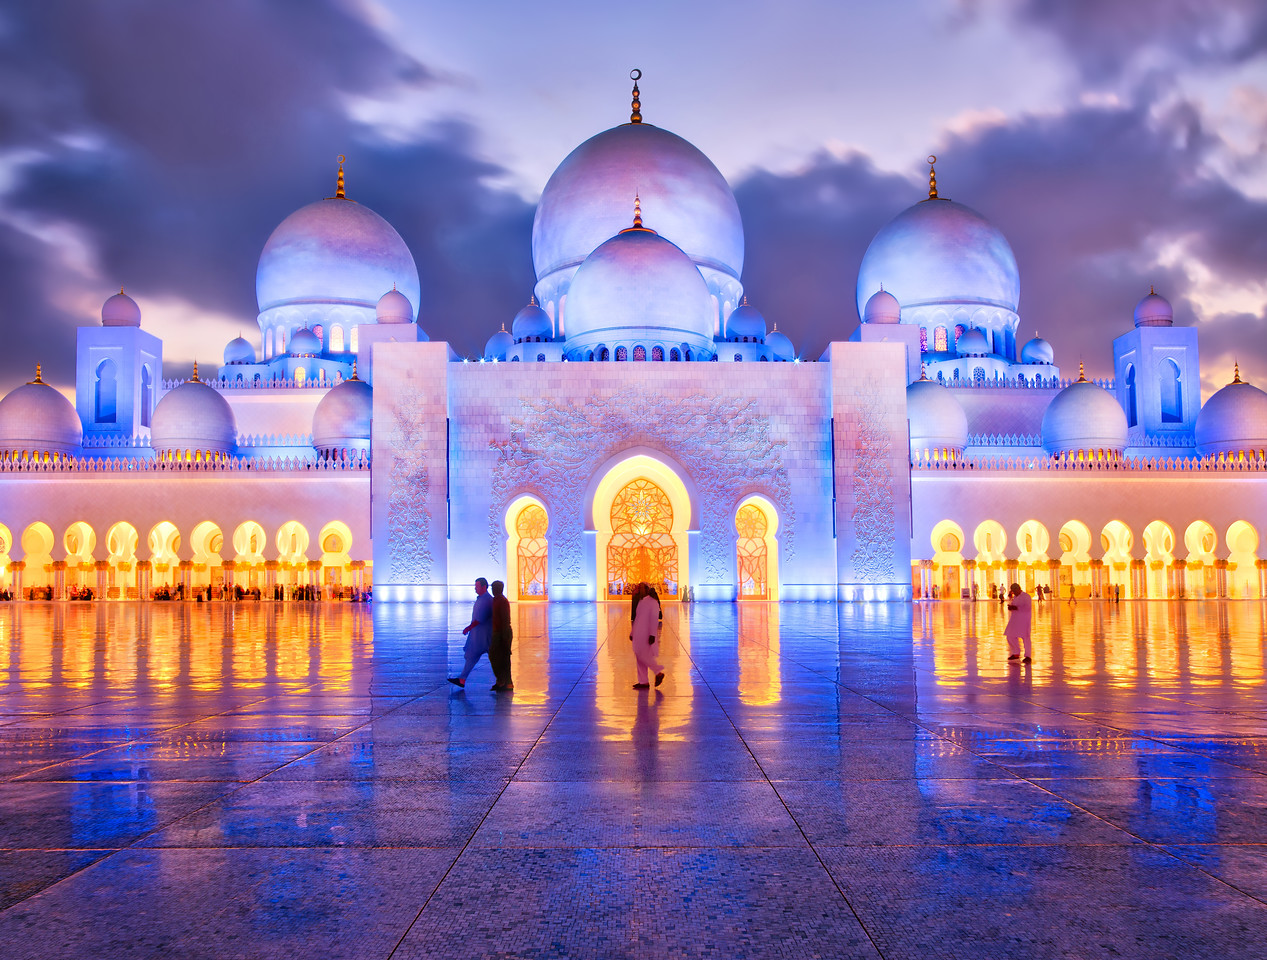 An Evening Stroll At The Mosque